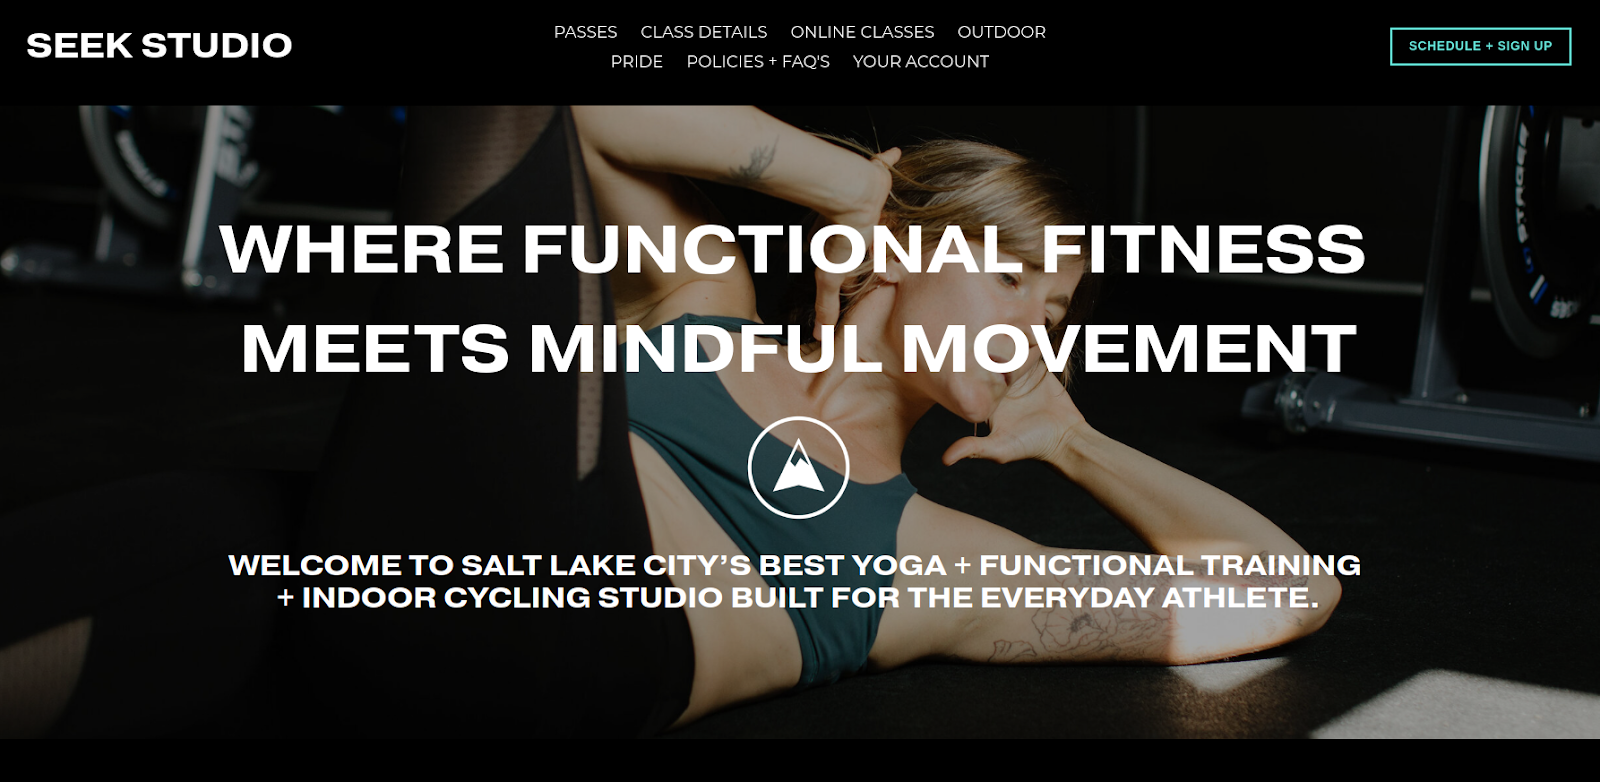 Seek Studio's home page describing functional fitness and mindful movement